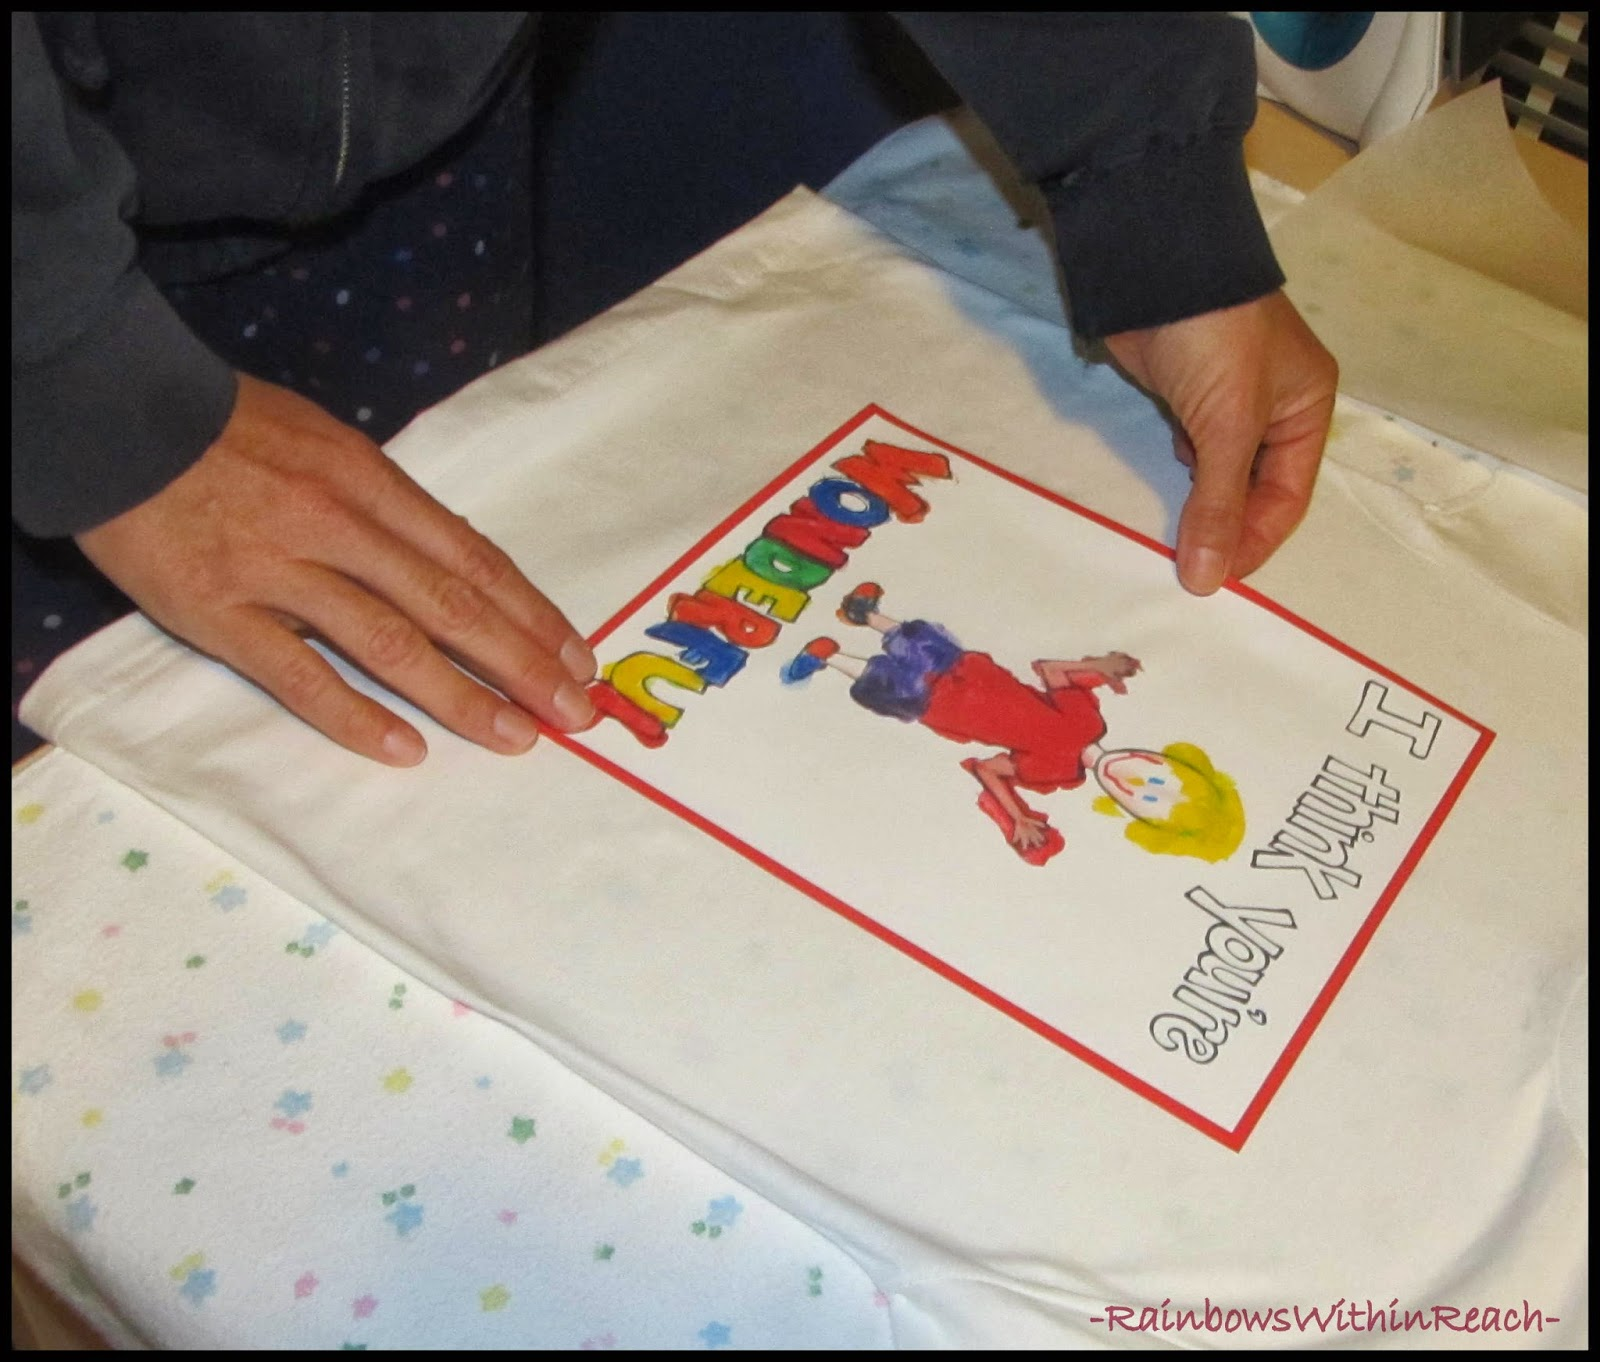 Personalized Tshirt Painting Ready for Iron-on Application via RainbowsWithinReach